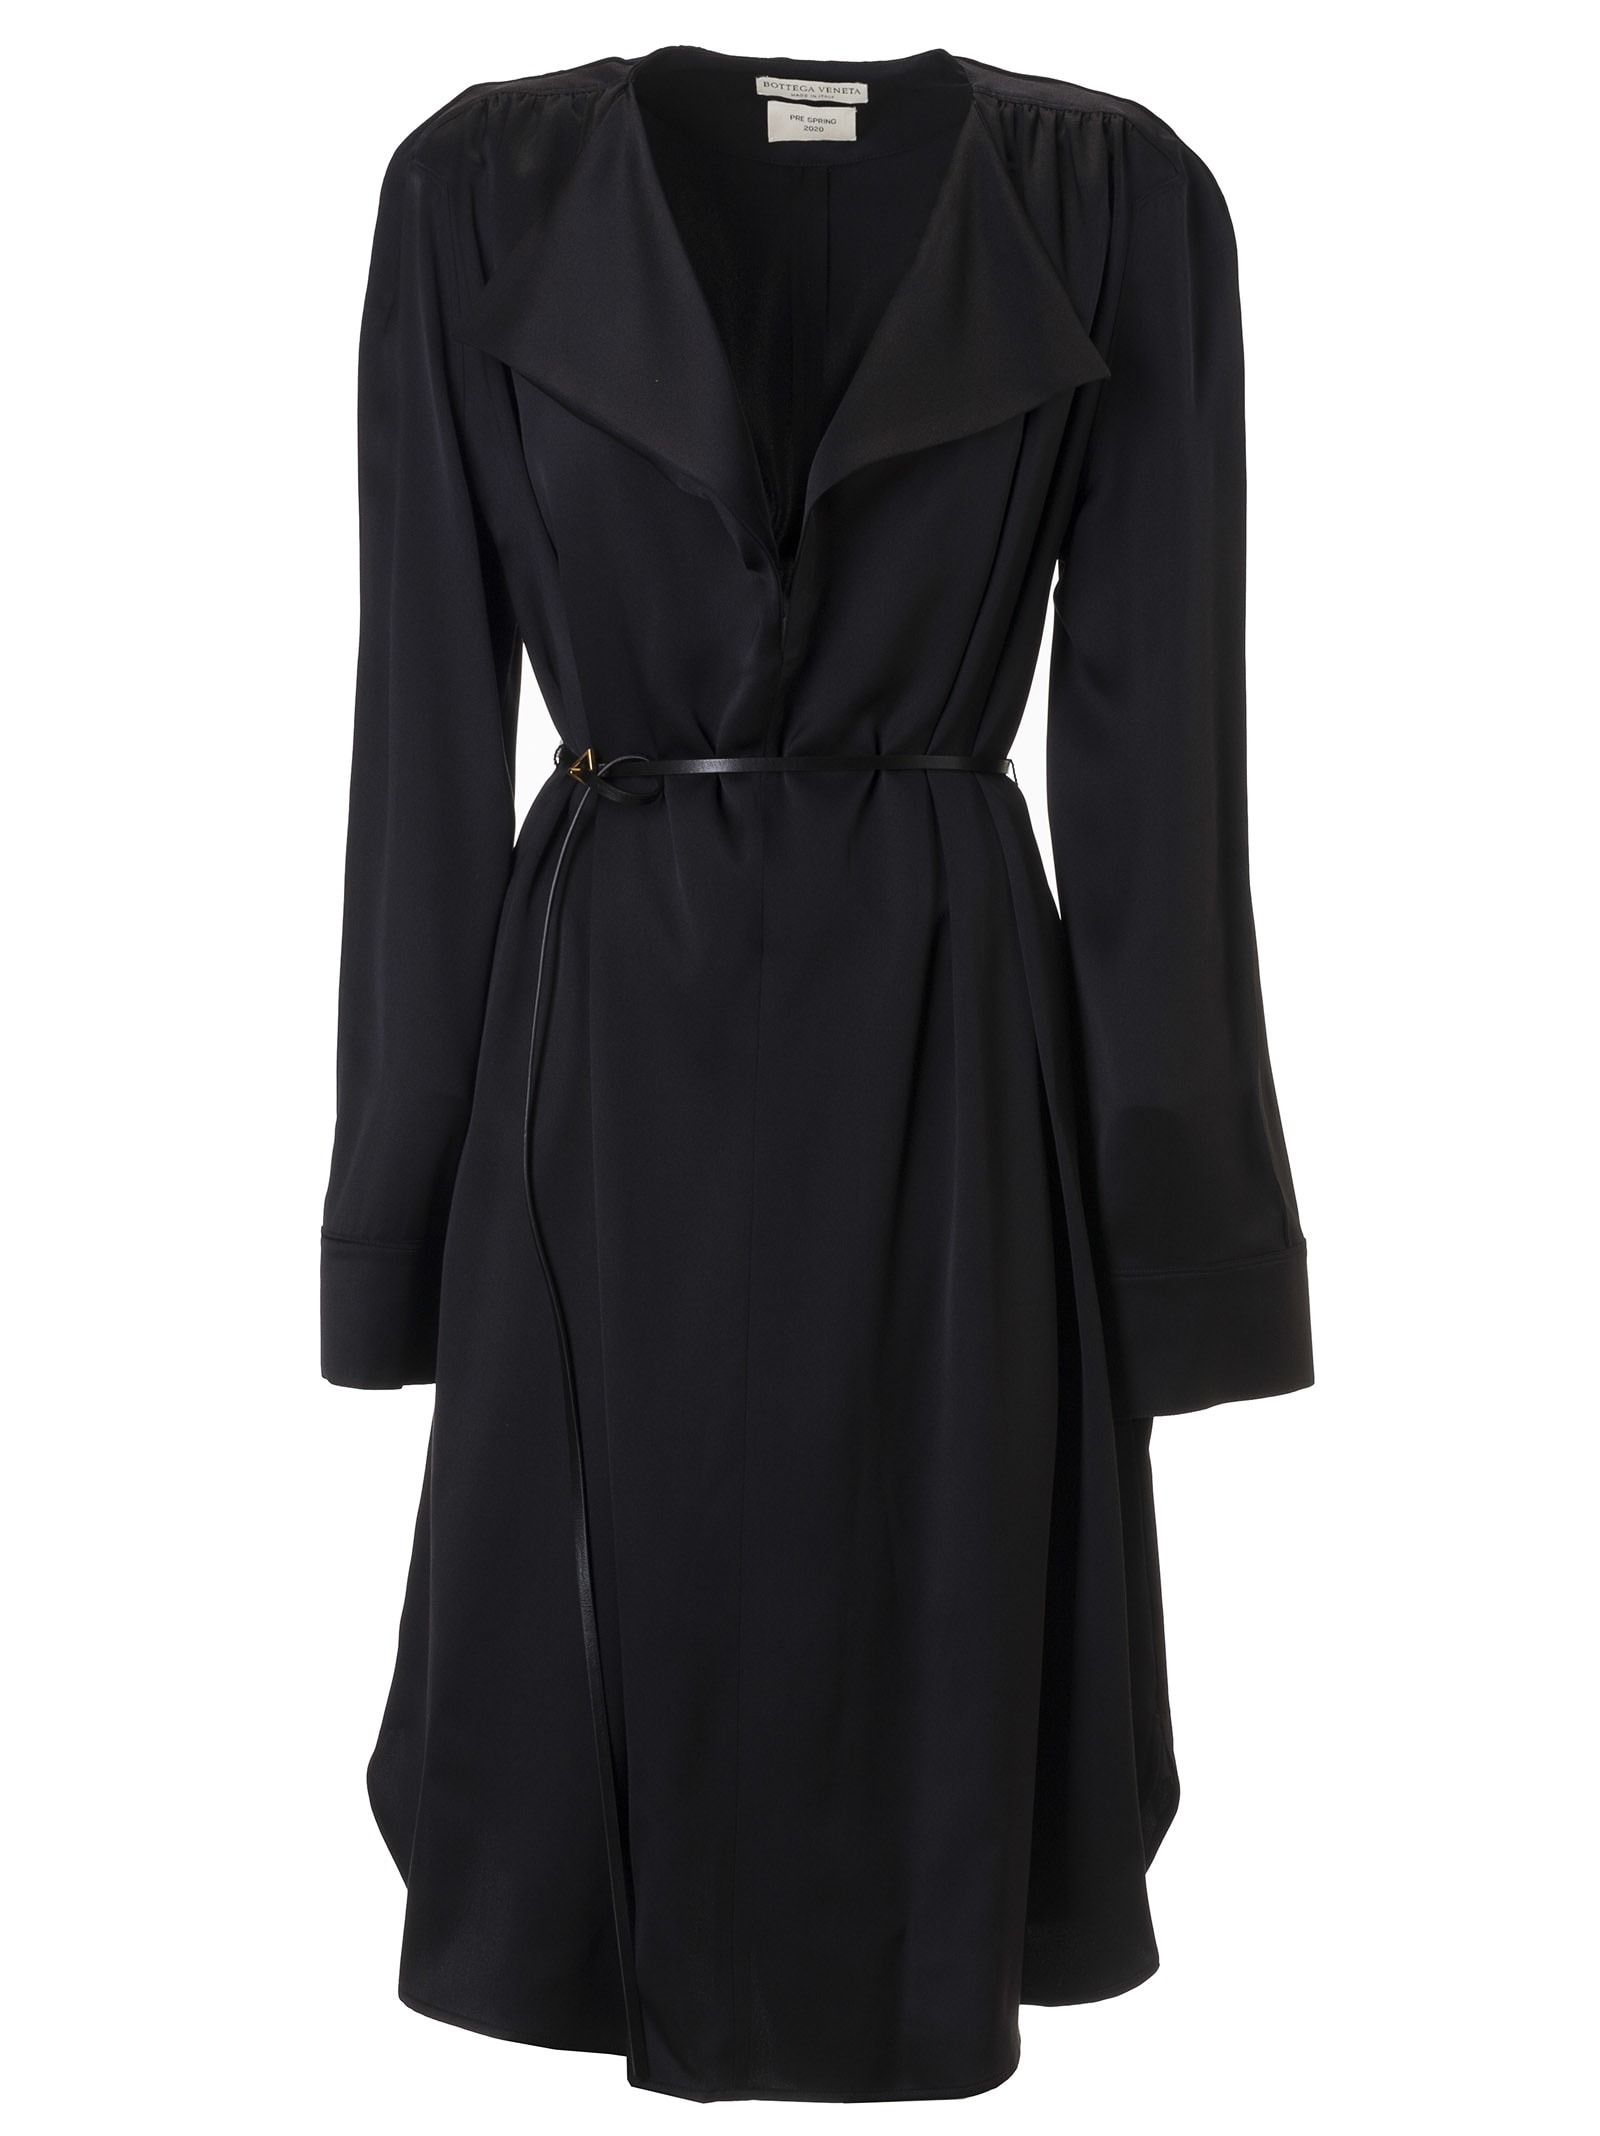 Buy Bottega Veneta Belted Waist Mid-length Dress online, shop Bottega Veneta with free shipping